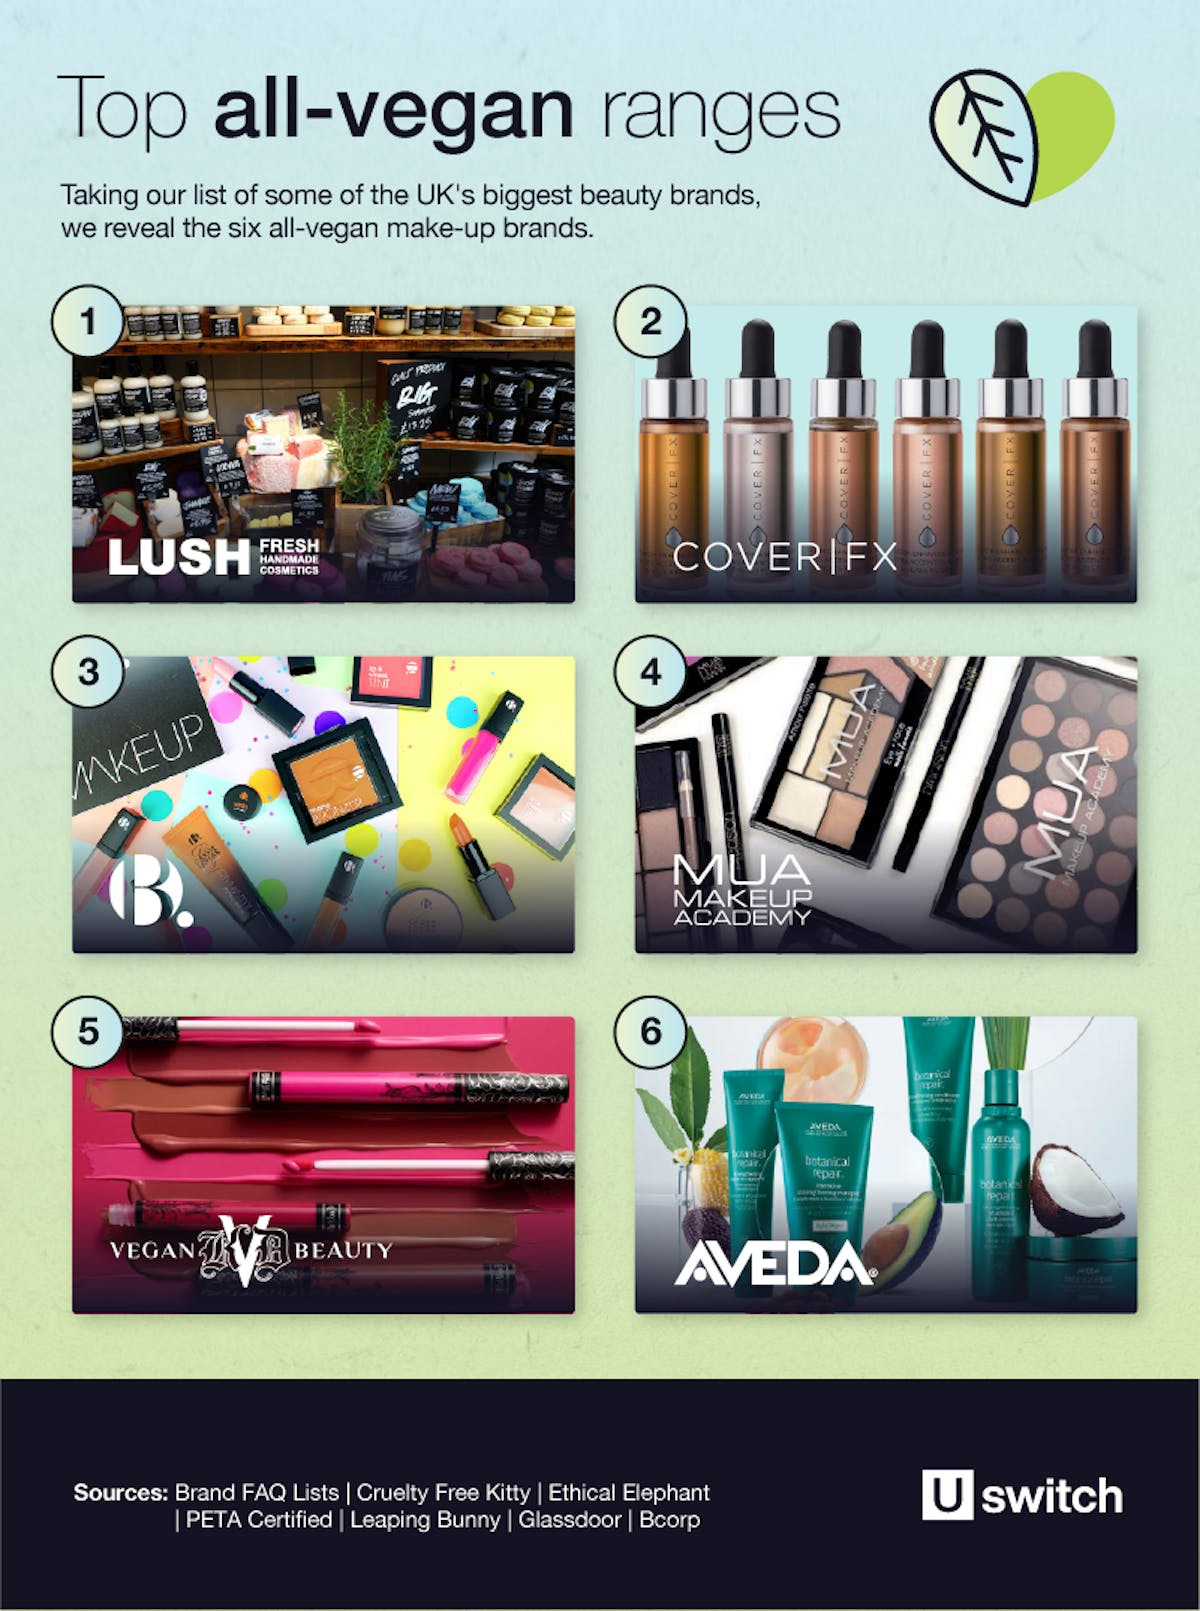 Pictures of the top six all-vegan beauty ranges